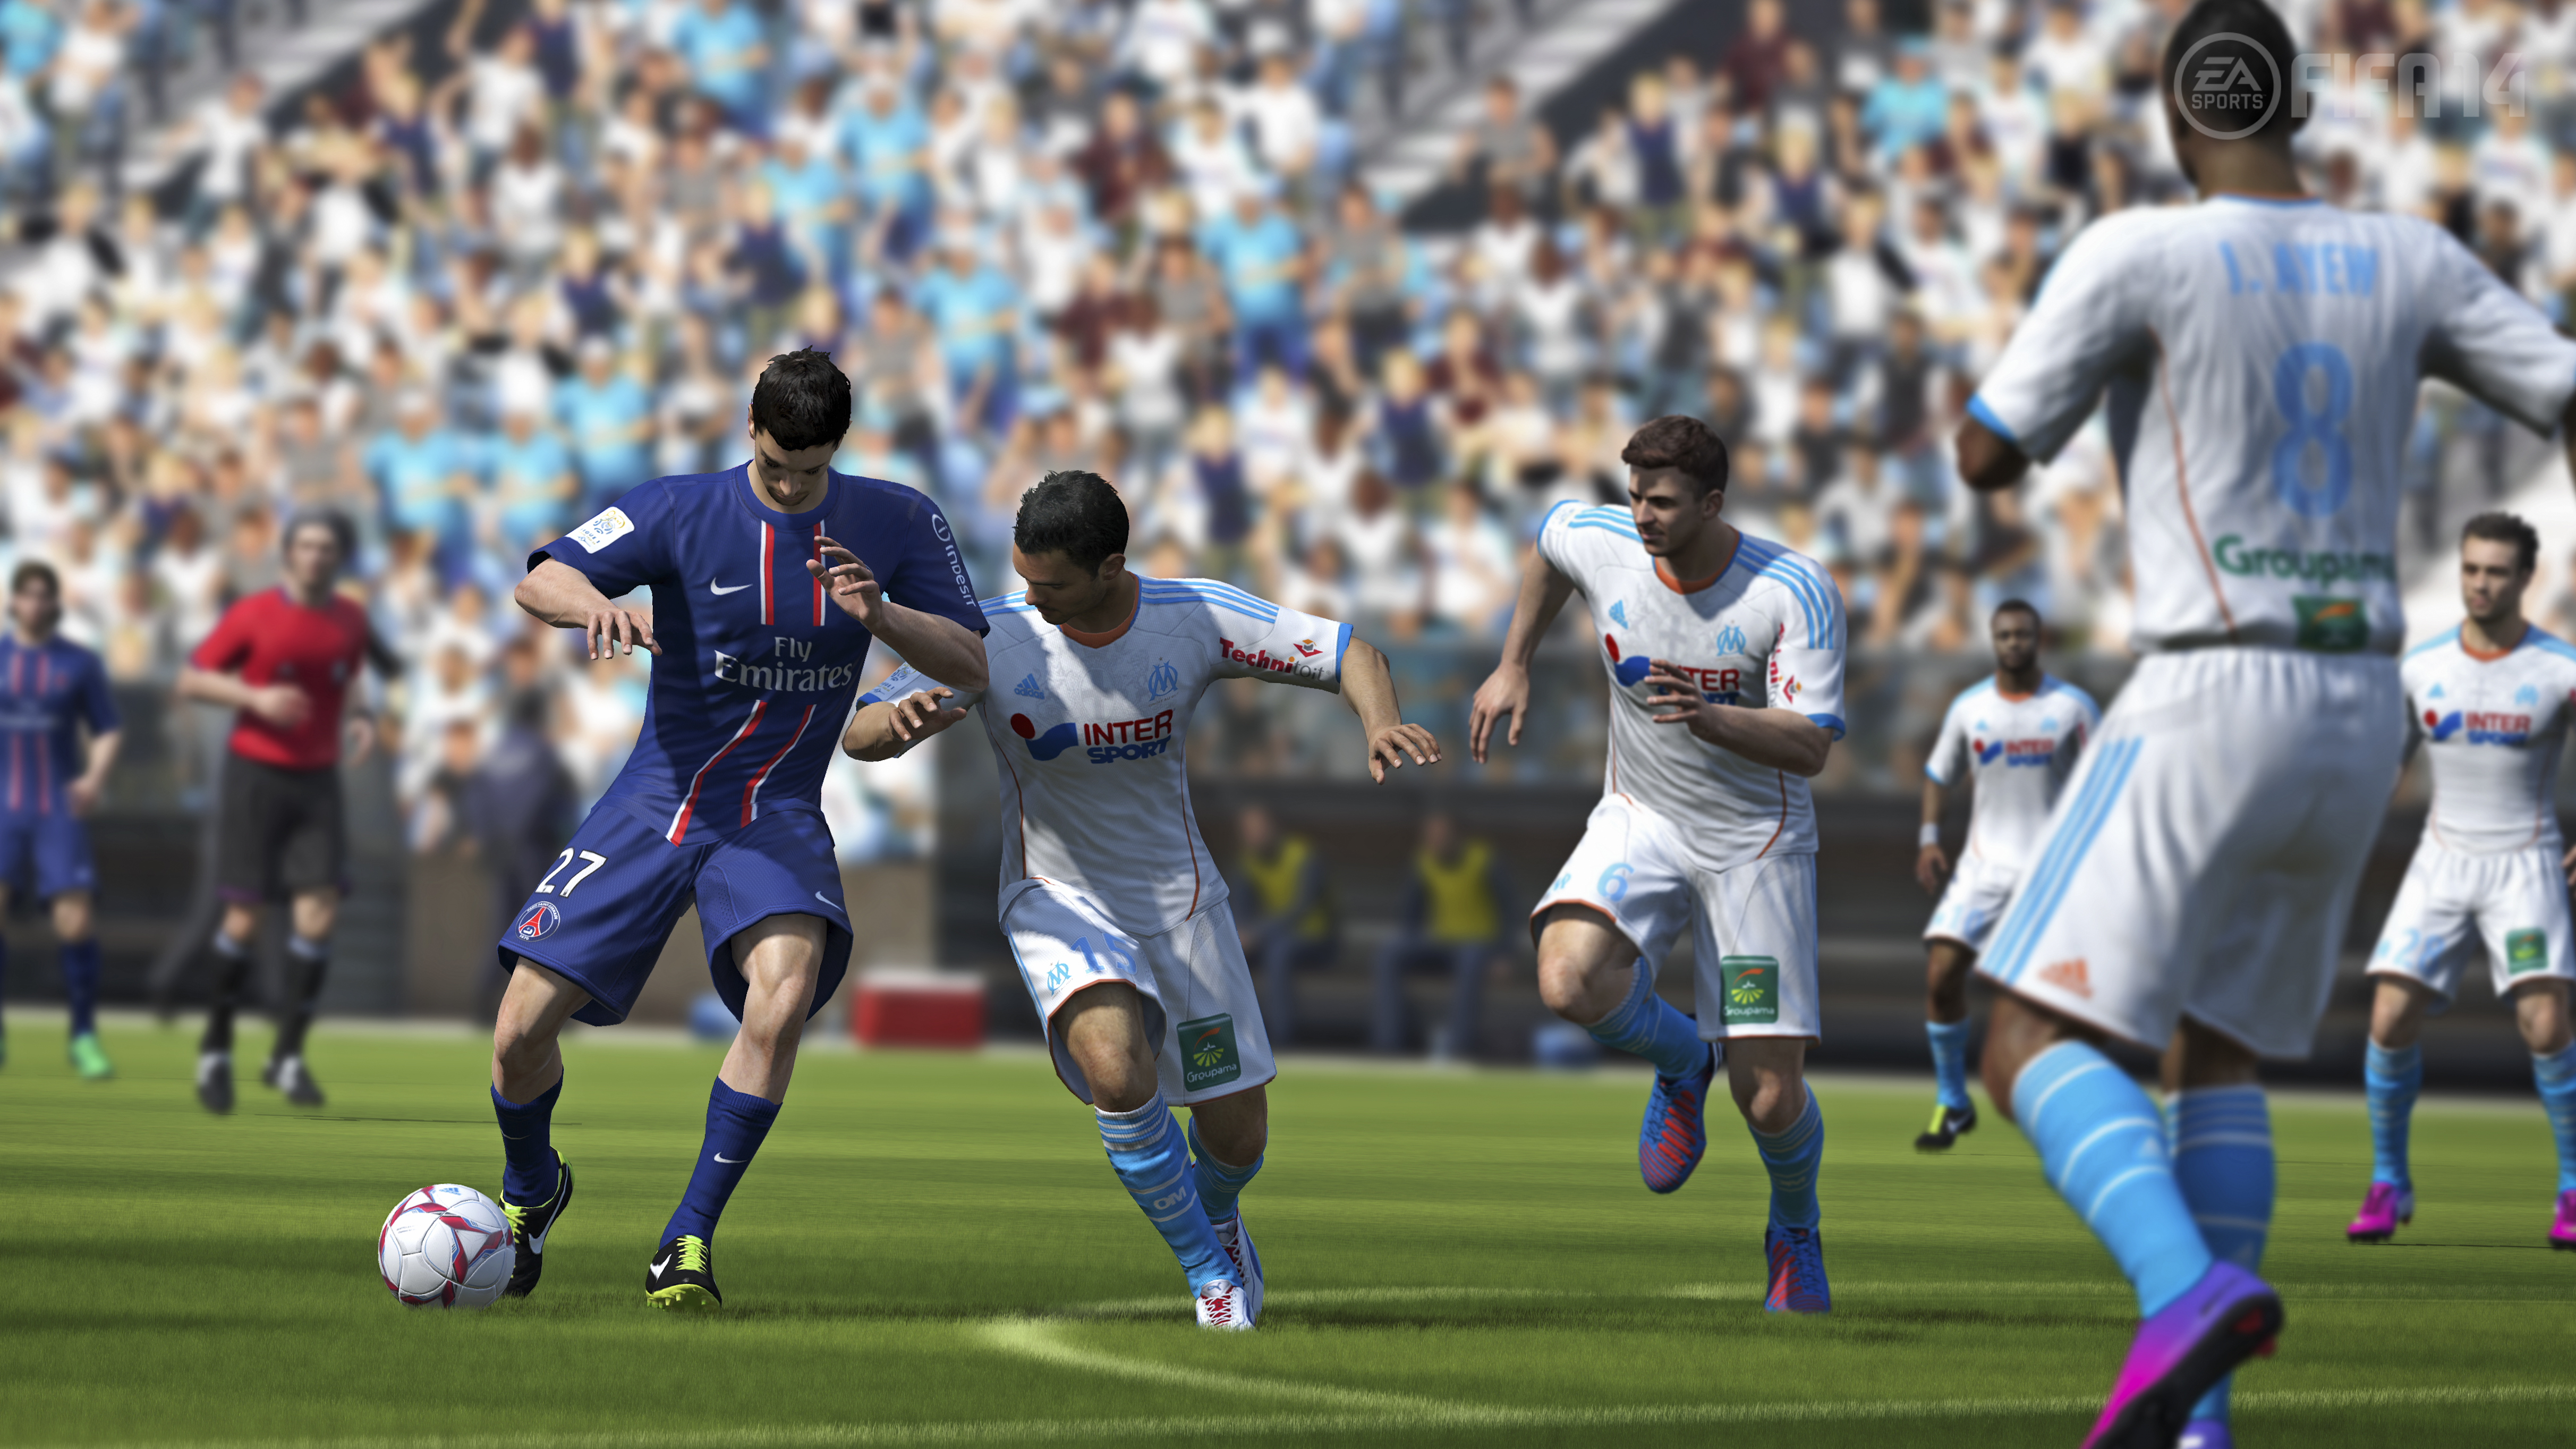 2013-04-21-FIFA14_FR_protect_the_ball_WM.JPG